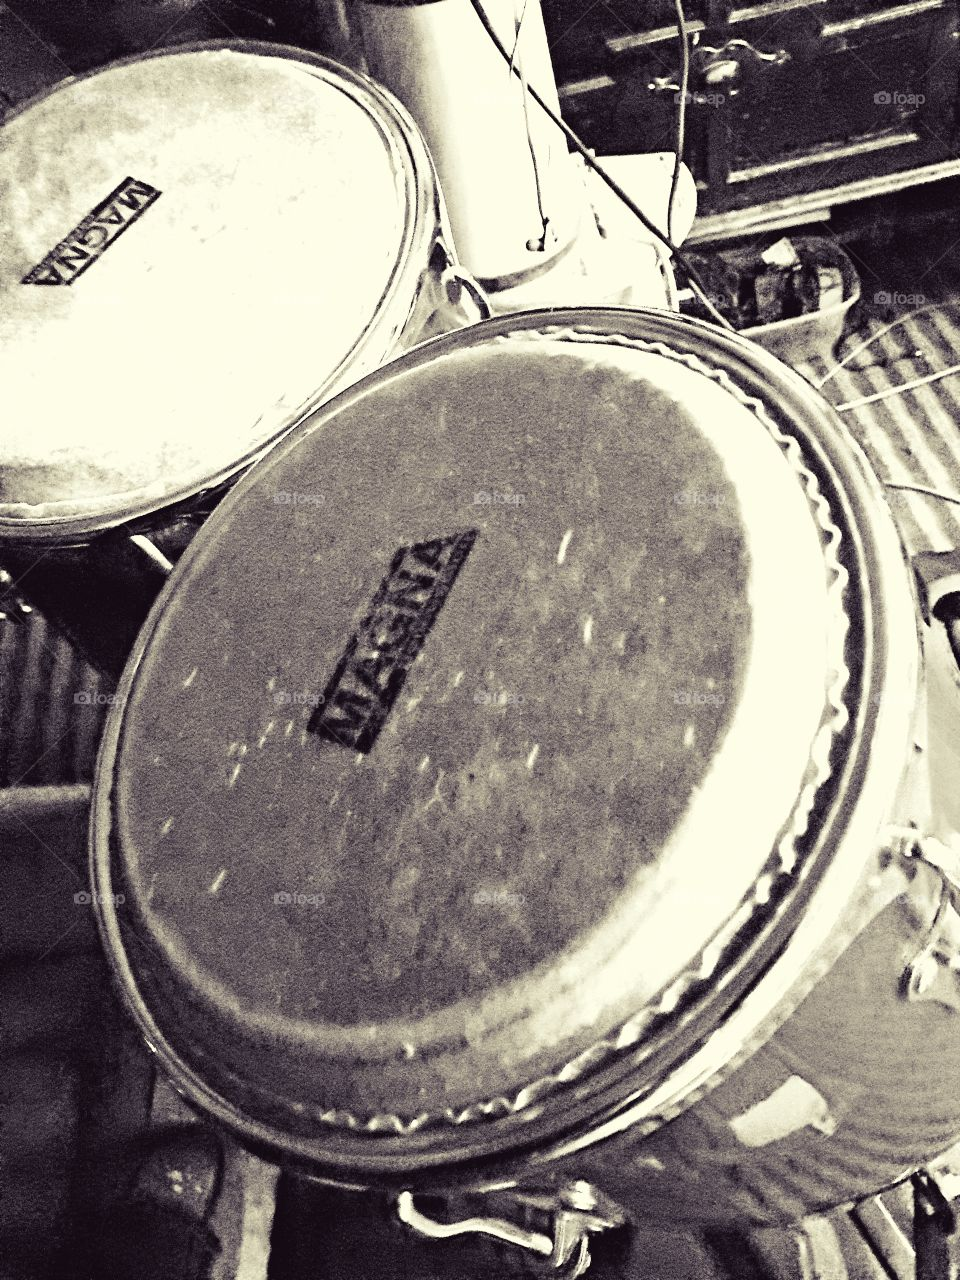 Black and white photo of a set of Magna bongo drums.